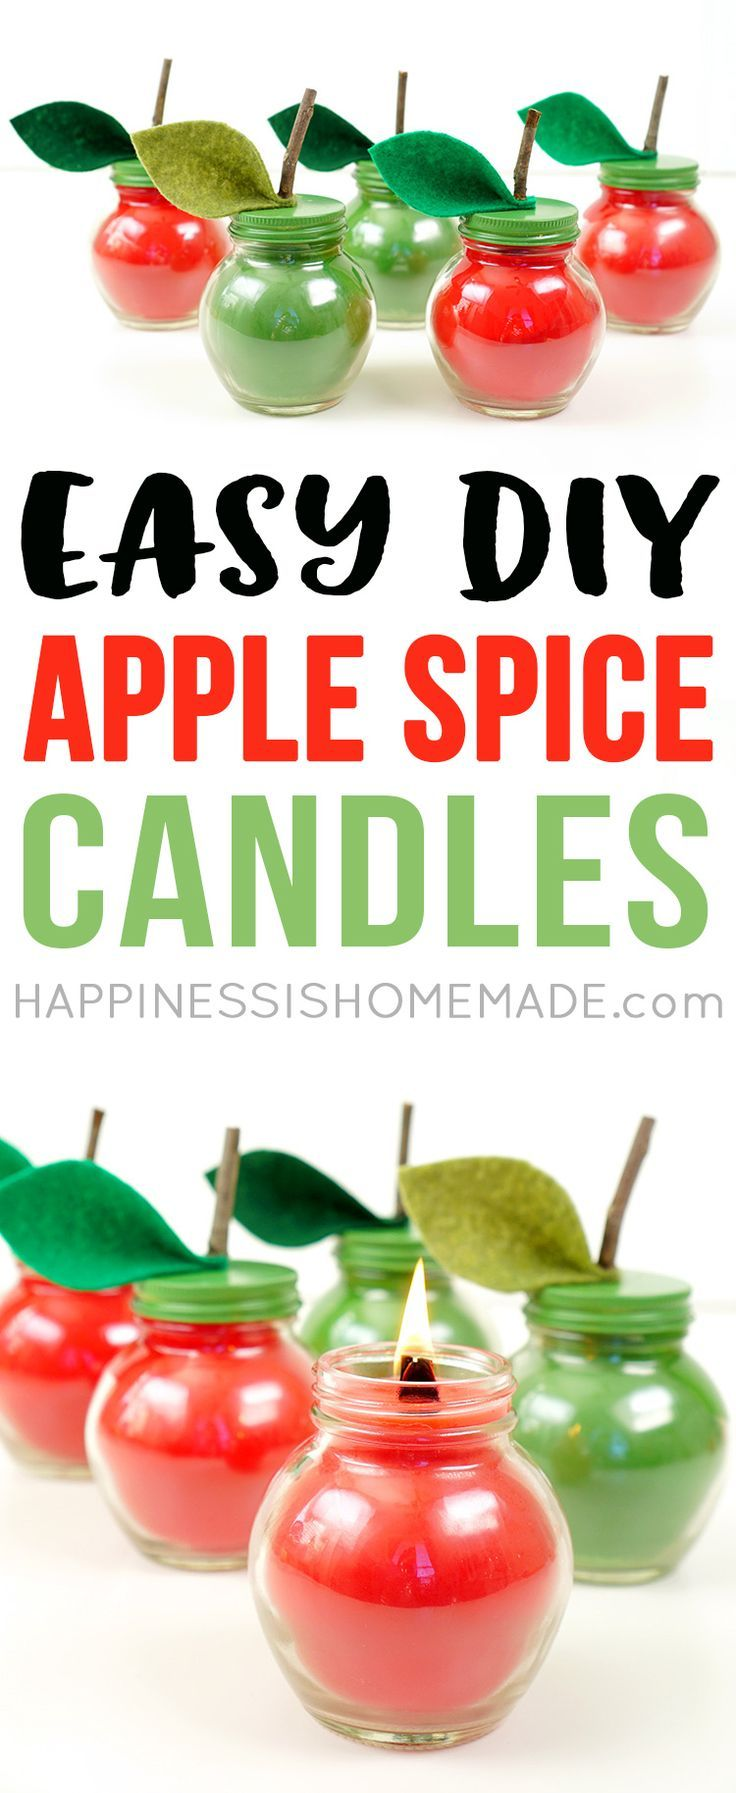 Ever wondered how to make candles? These Easy DIY Apple